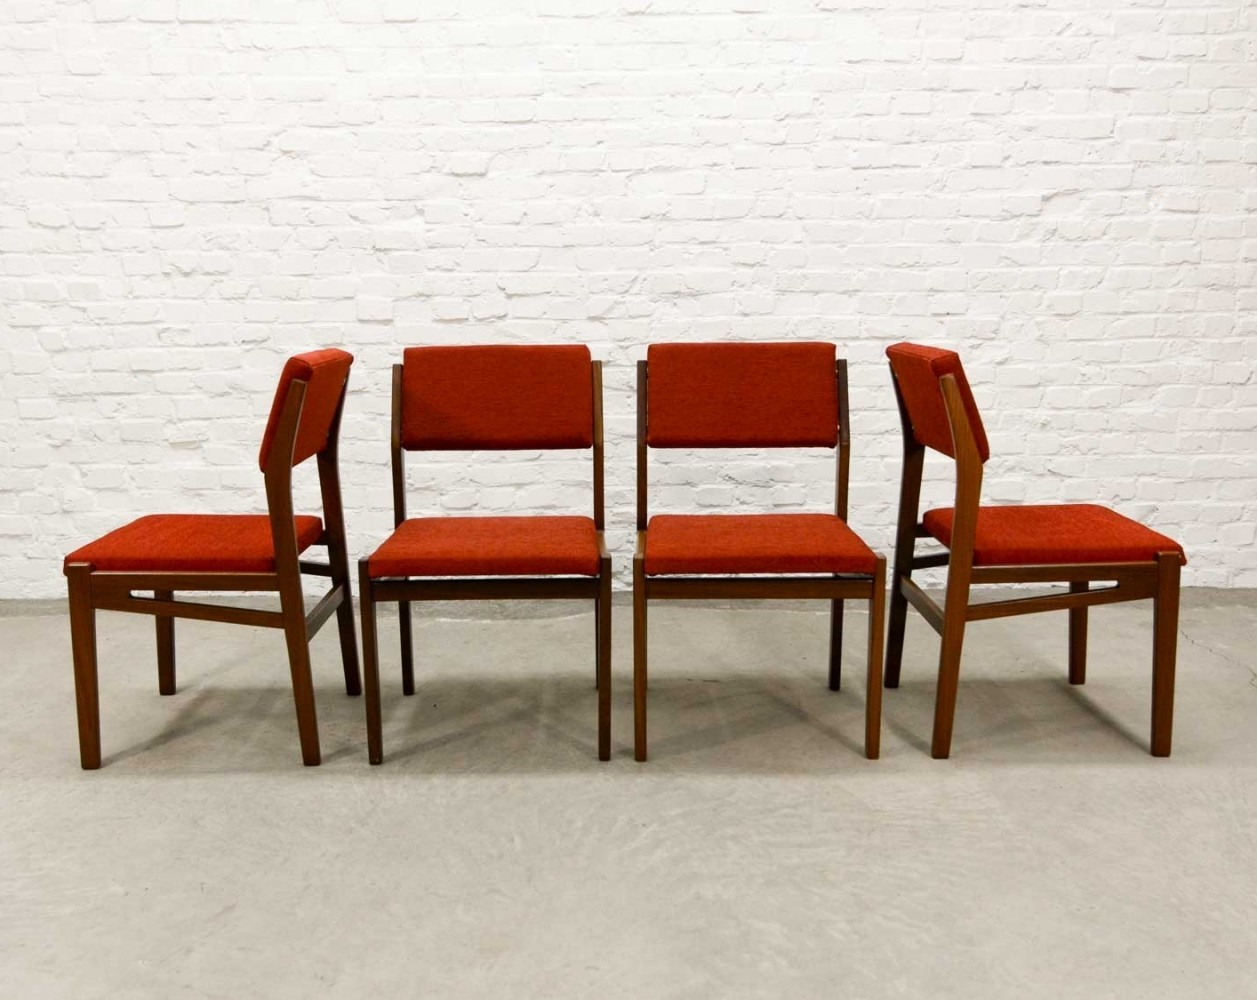 Set of Four Teak Wood Stone Red Dining Chairs by Topform, 1960s